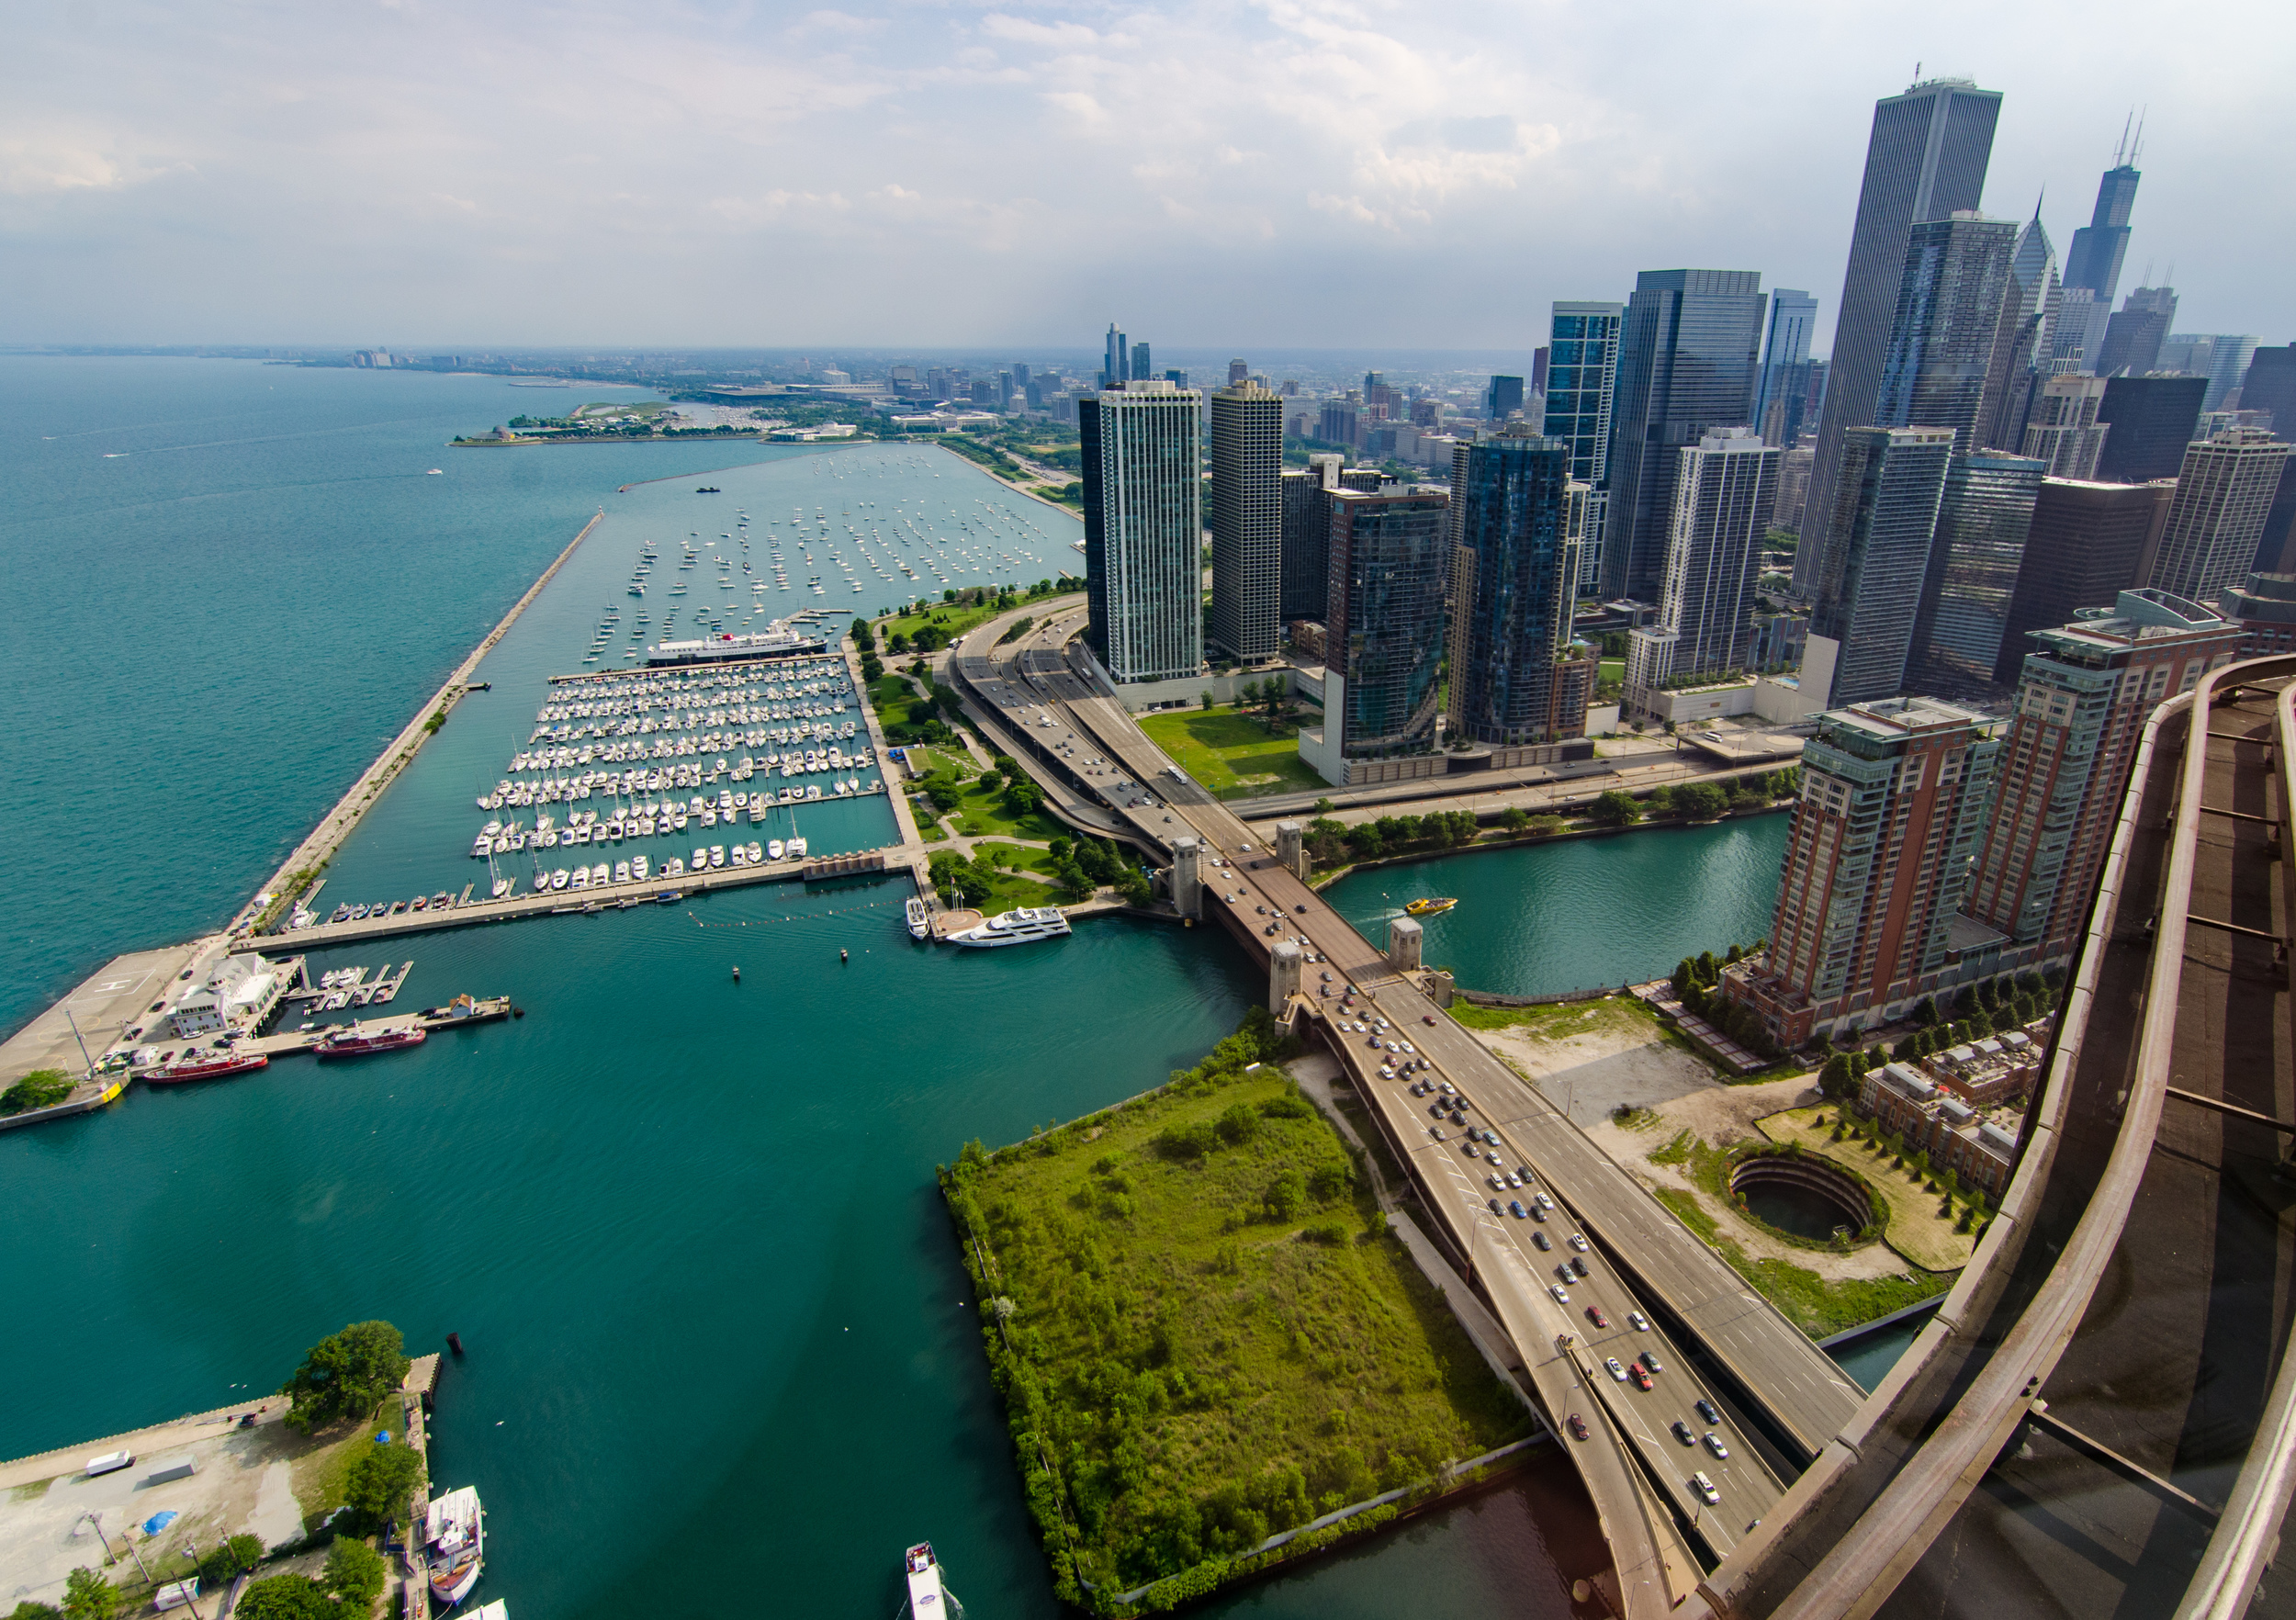 Mouth of the Chicago River